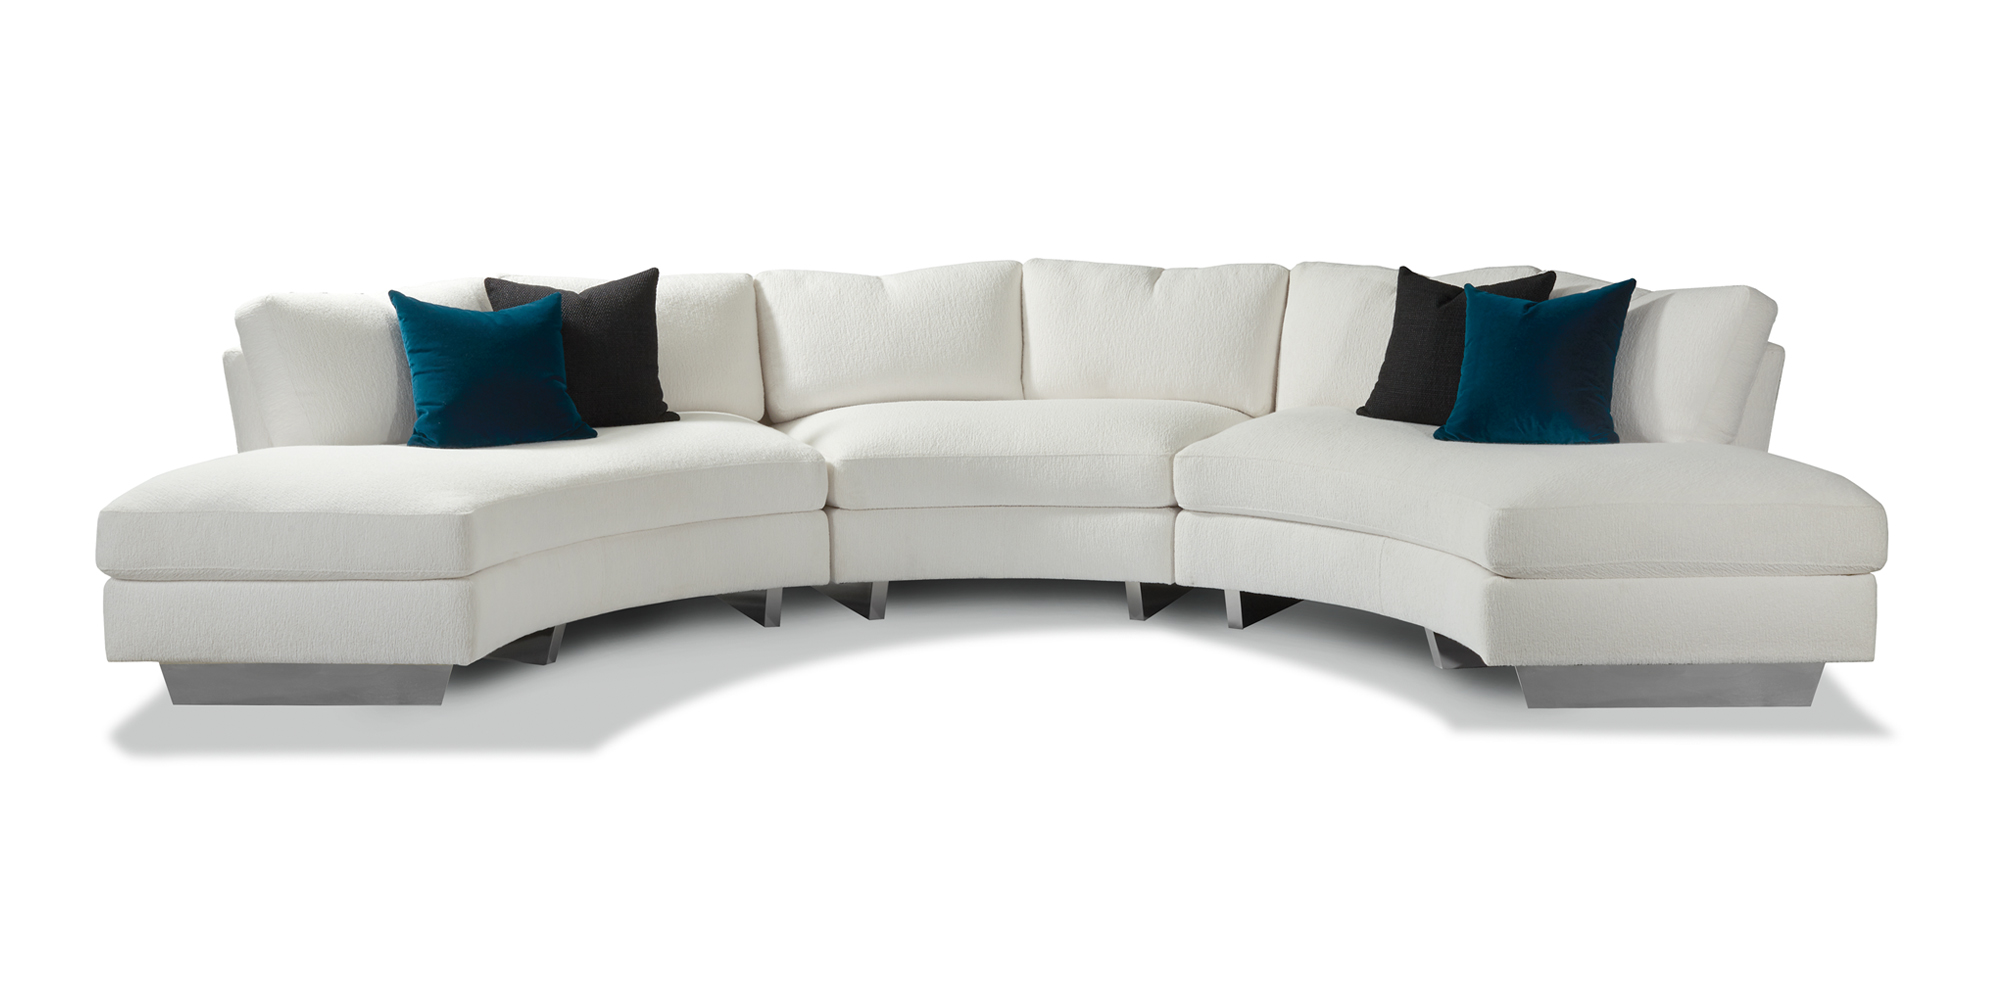 Cool Clip 2 Sectional